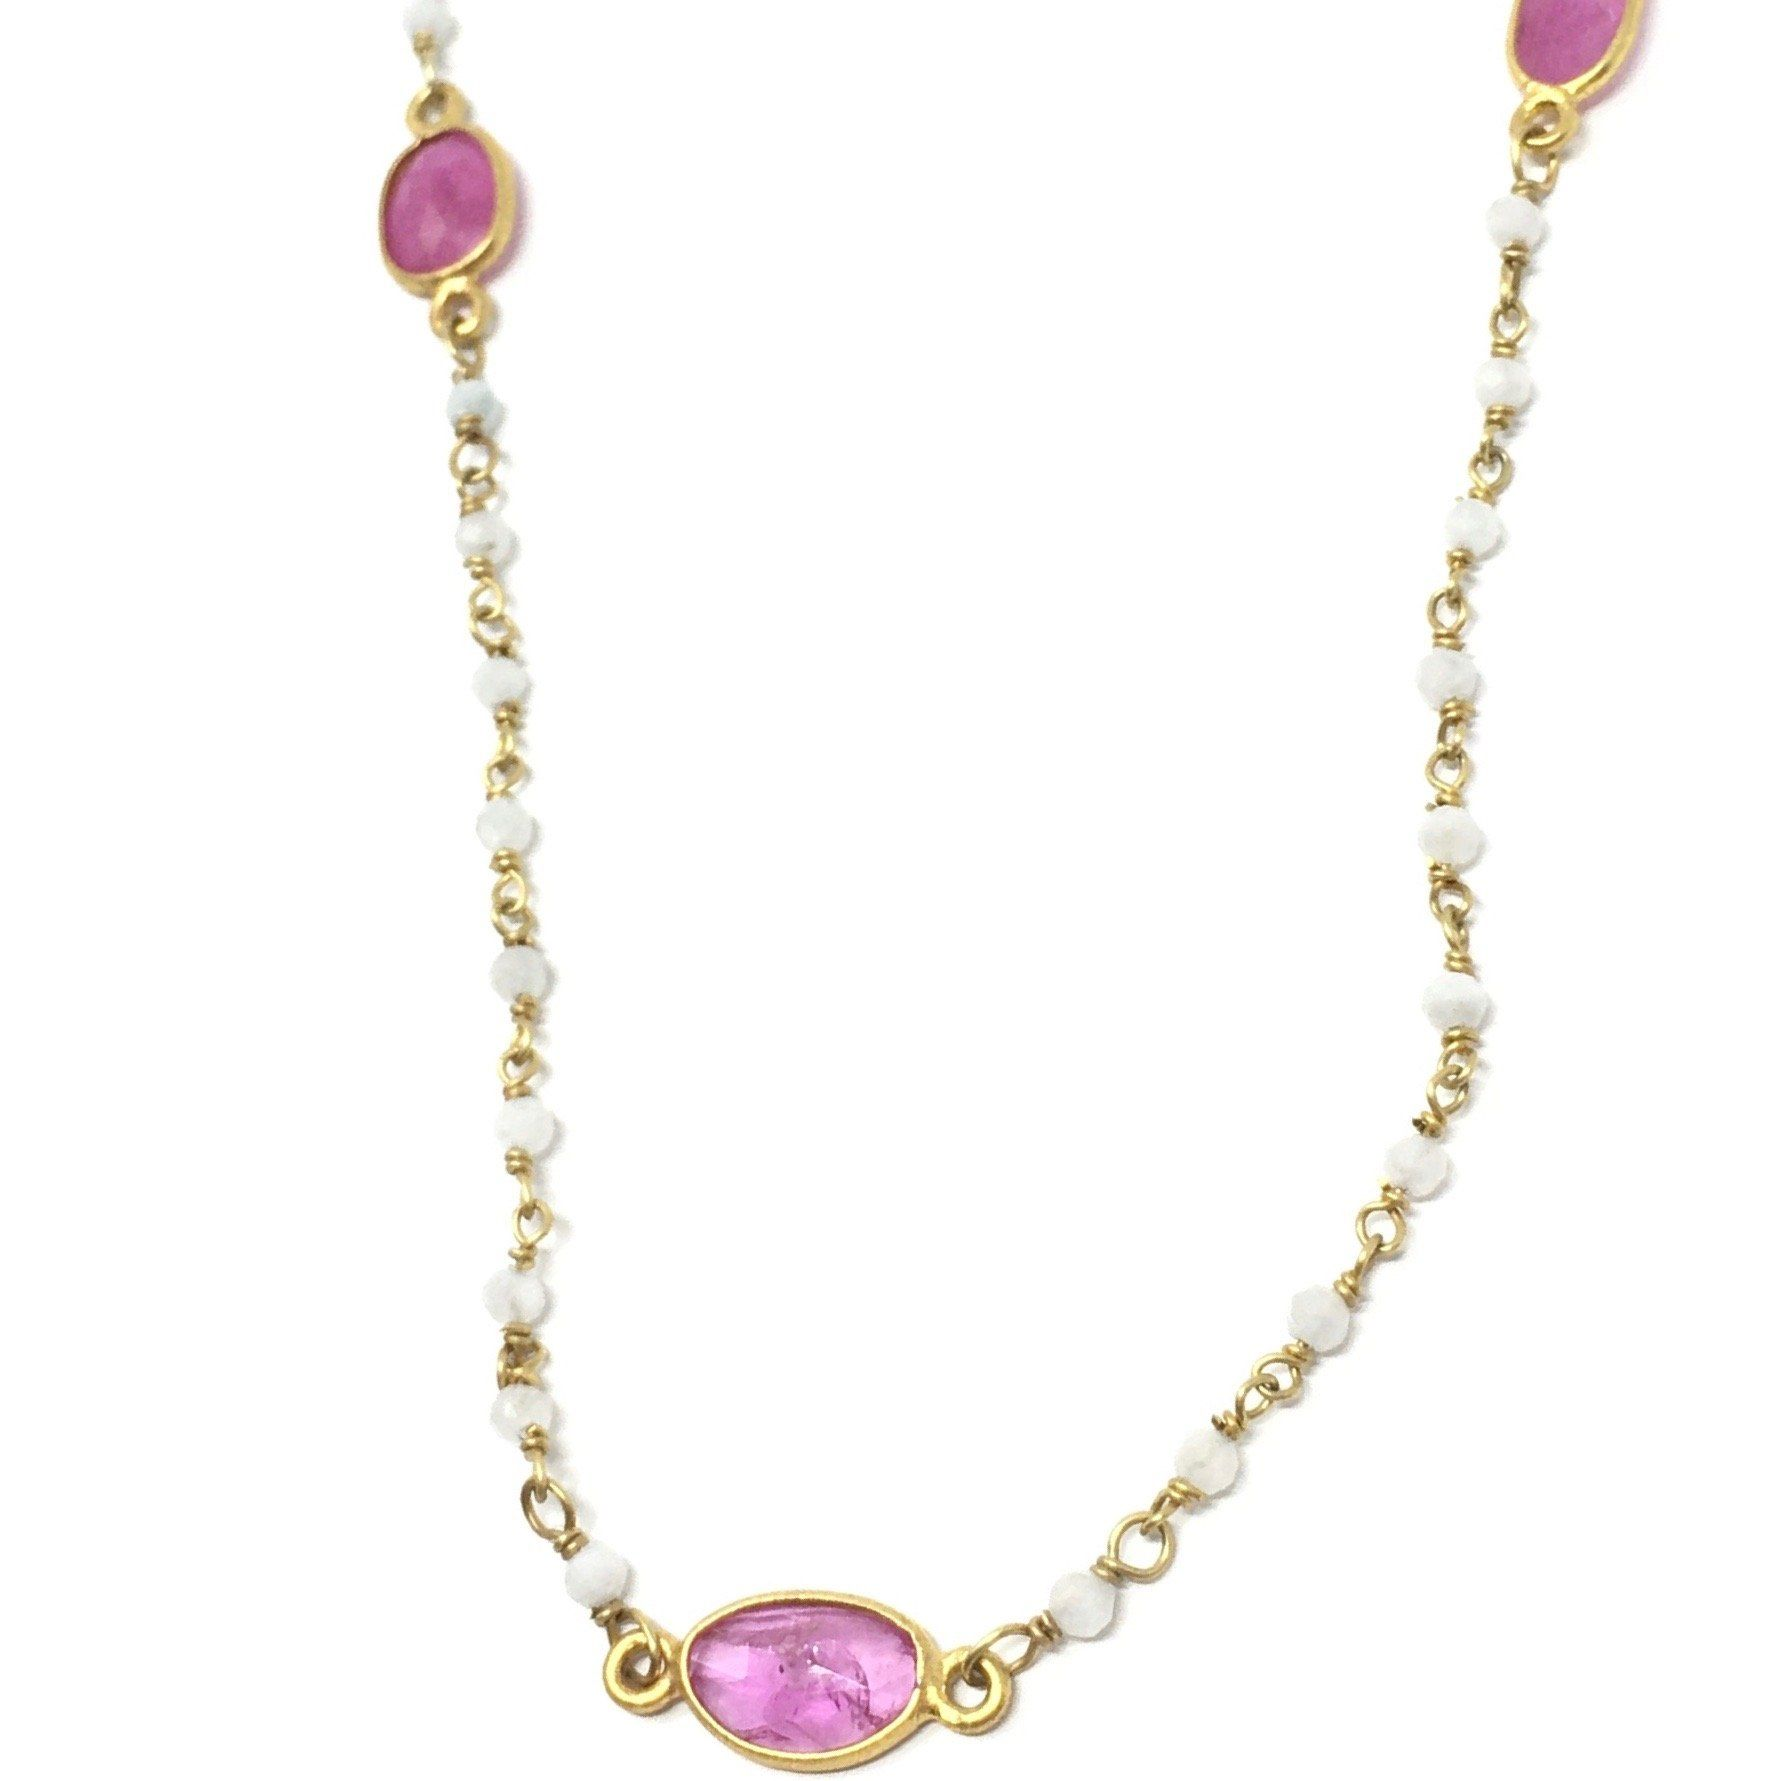 Ruby and Moonstone Necklace - Barnbury